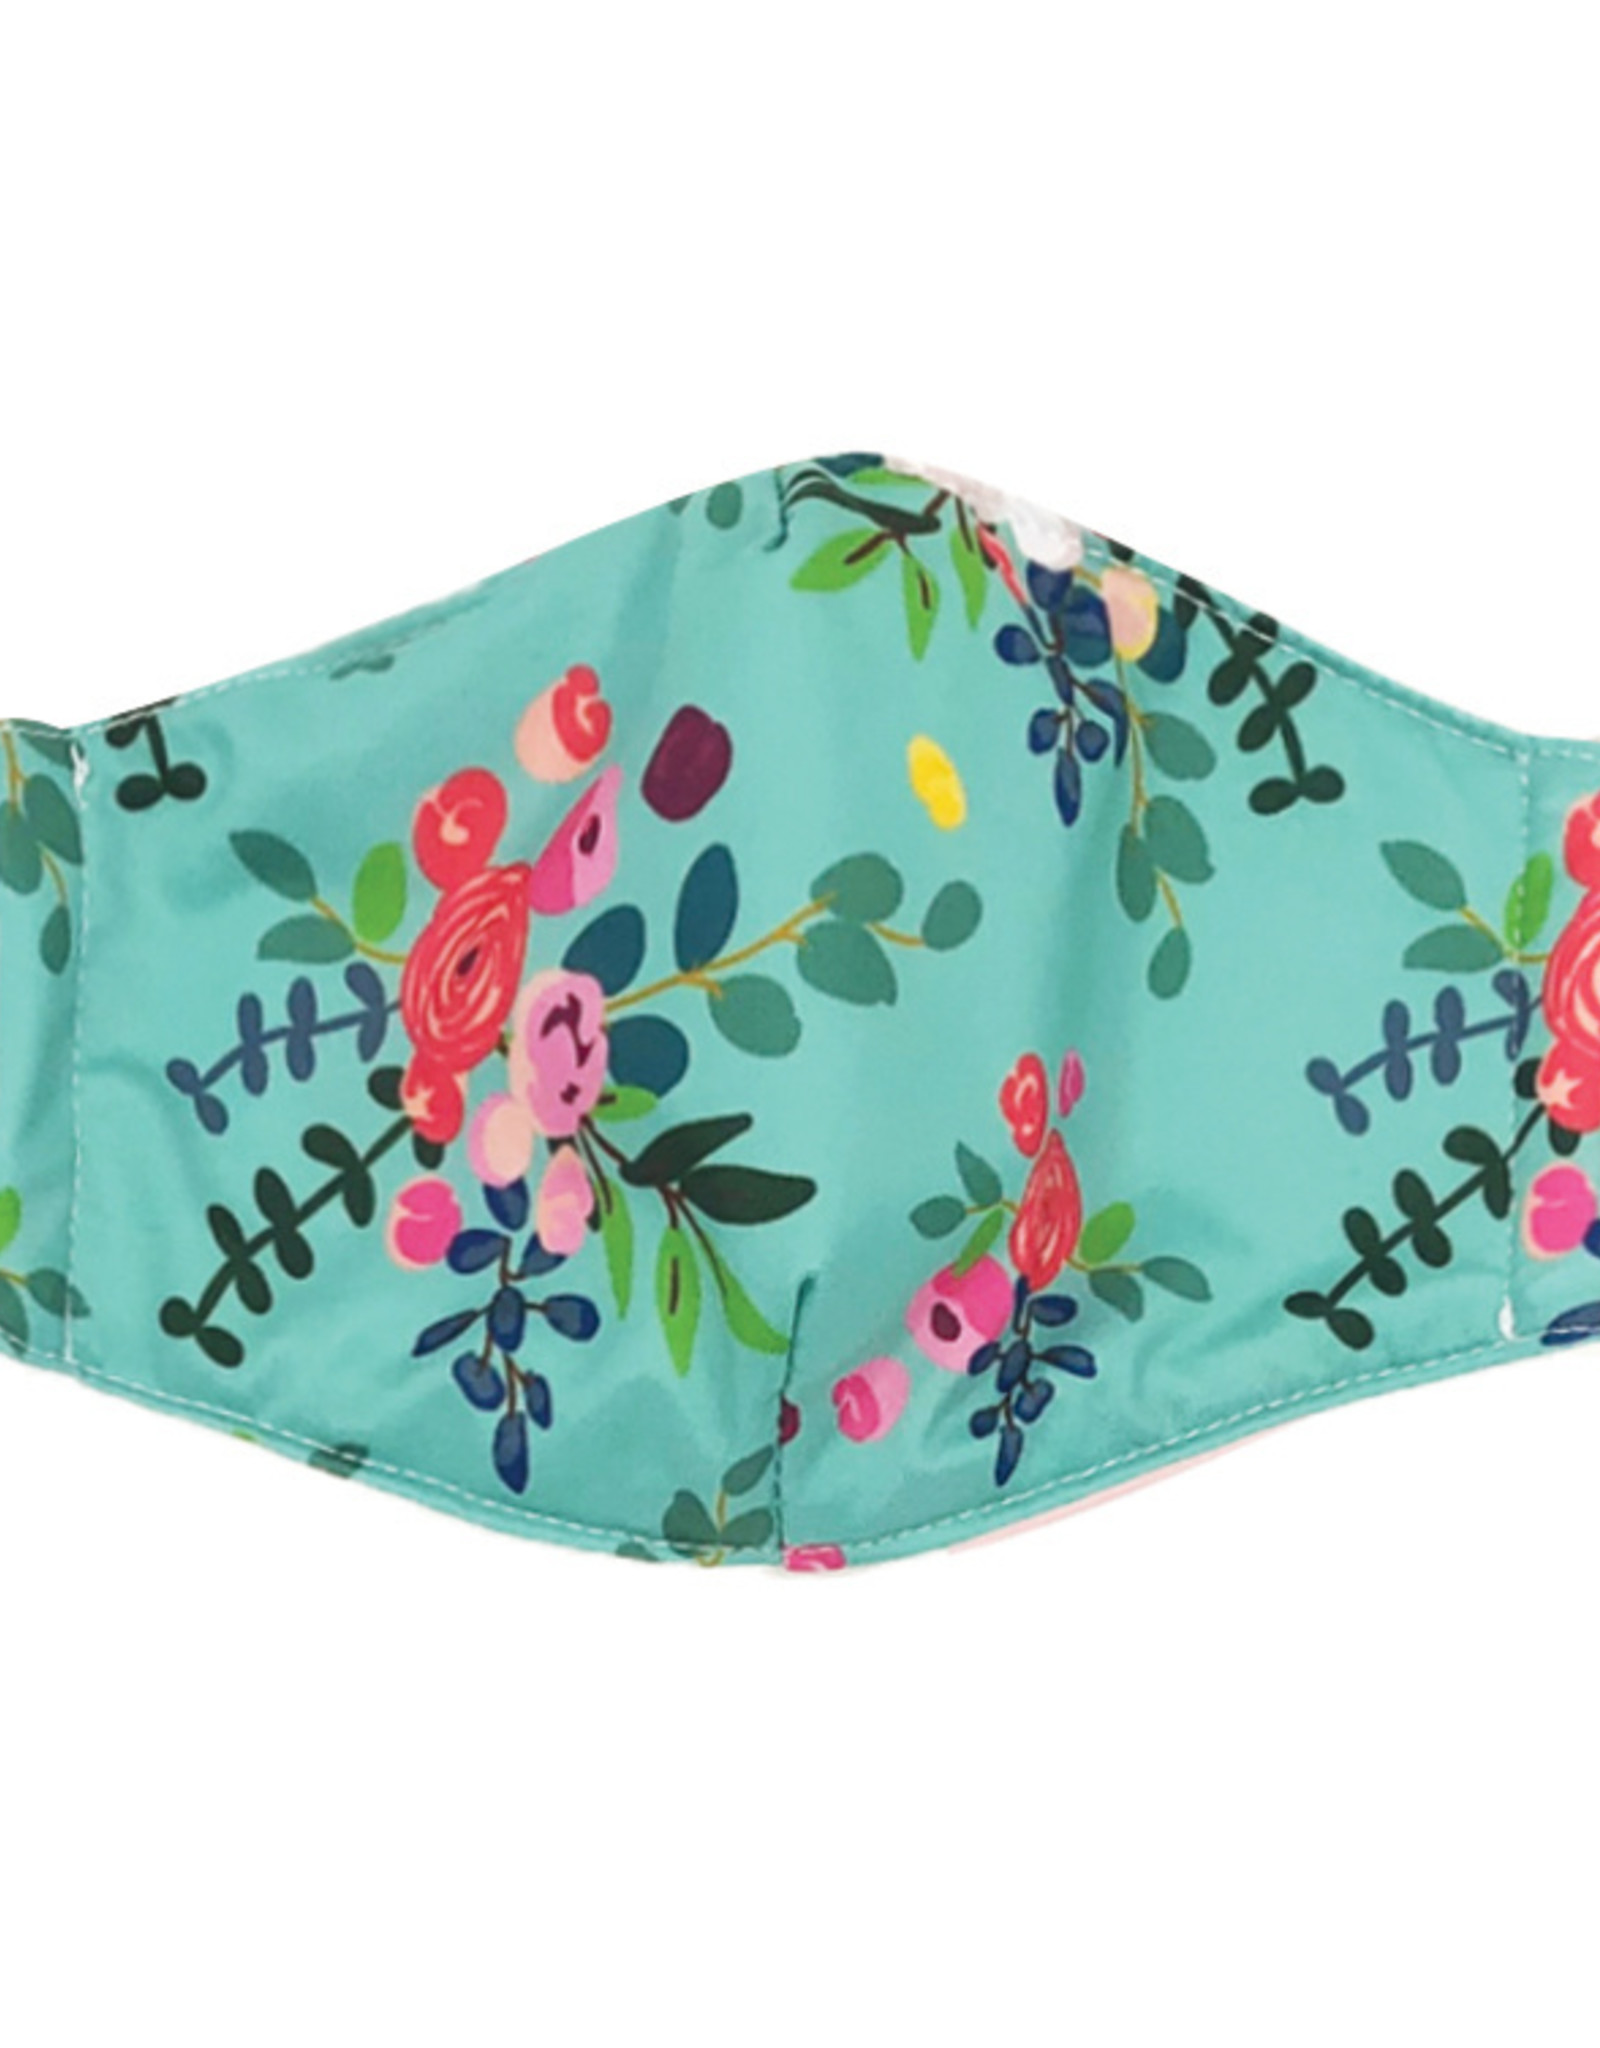 DM Merchandising Cotton Face Masks - Adjustable Straps - Teal Floral